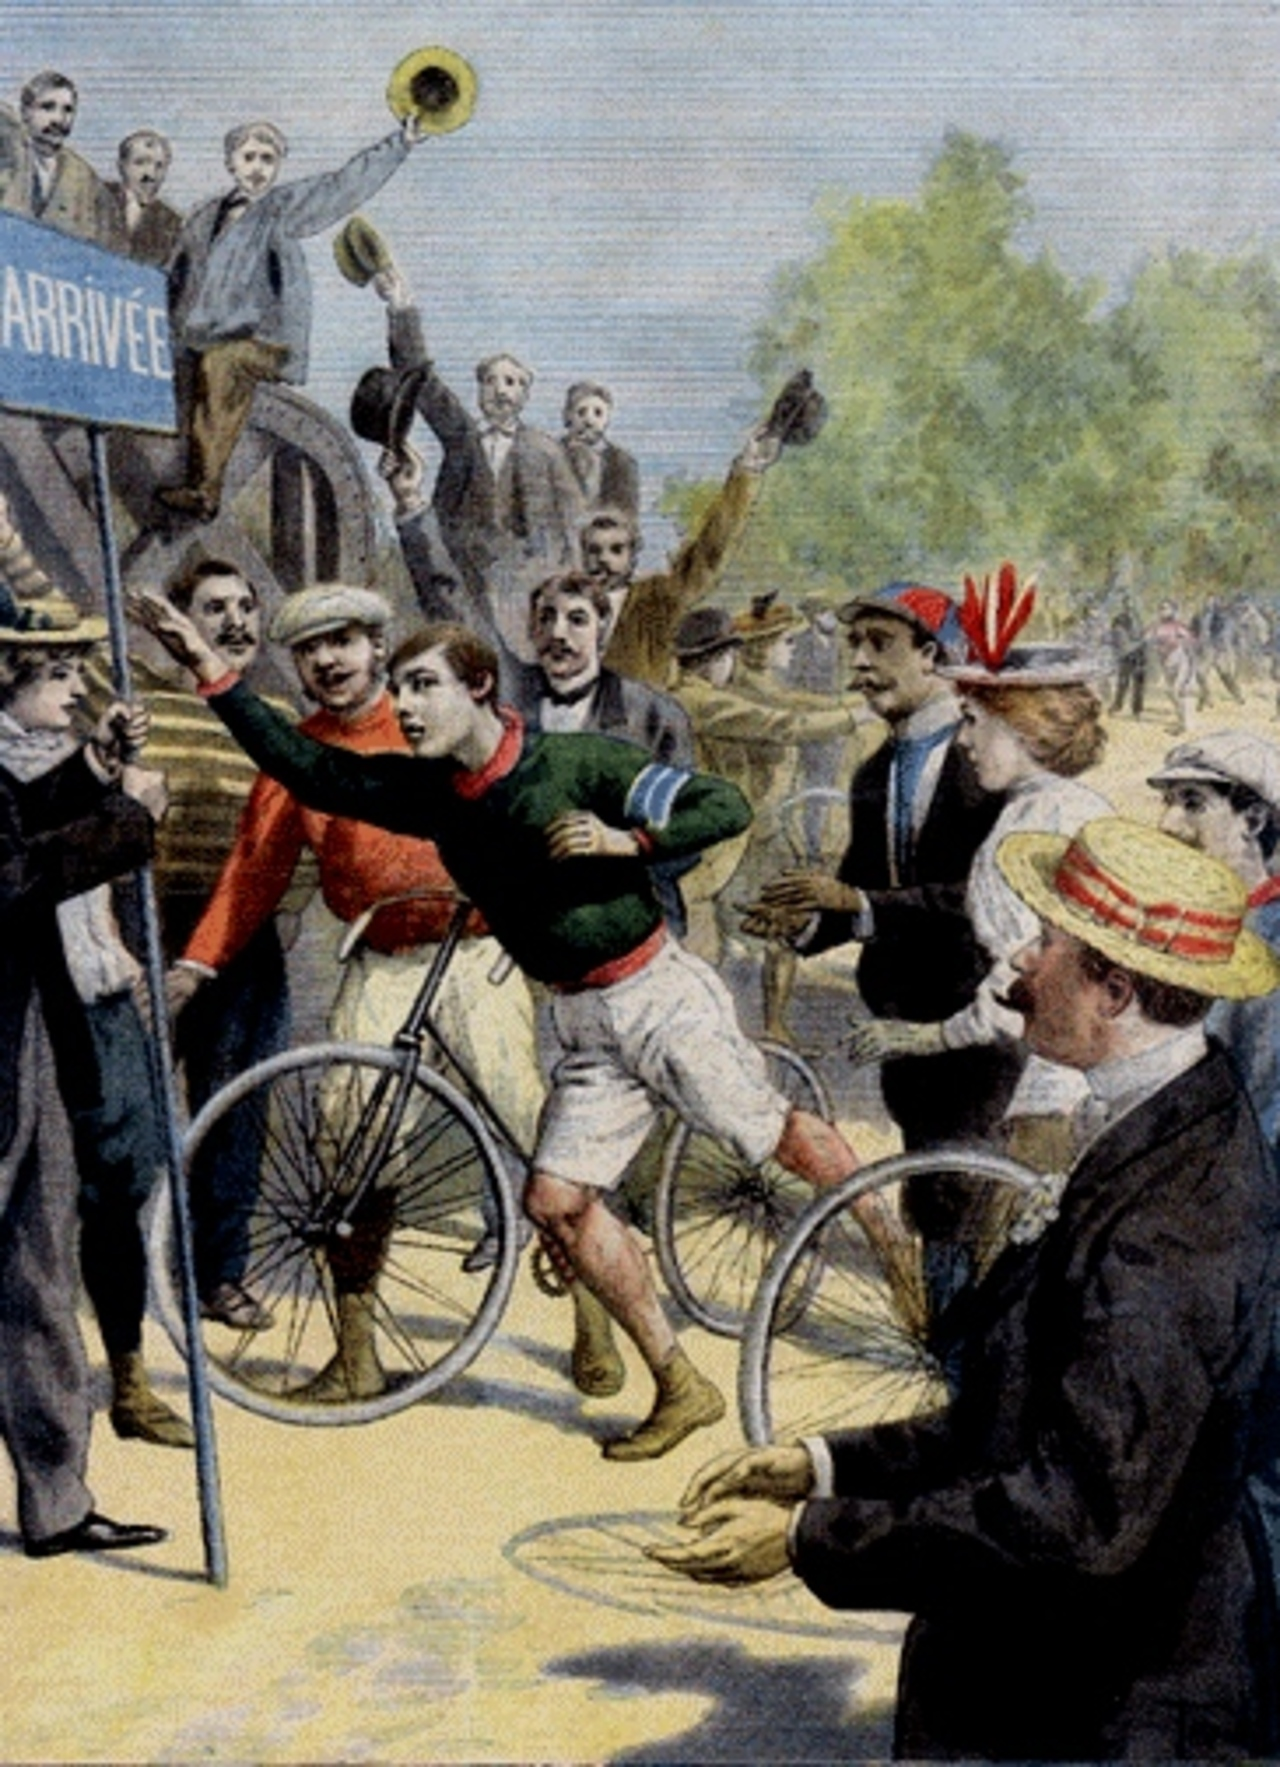 Len_hurst_wins_1896_paris_marathon_-_le_petit_journal_front_page